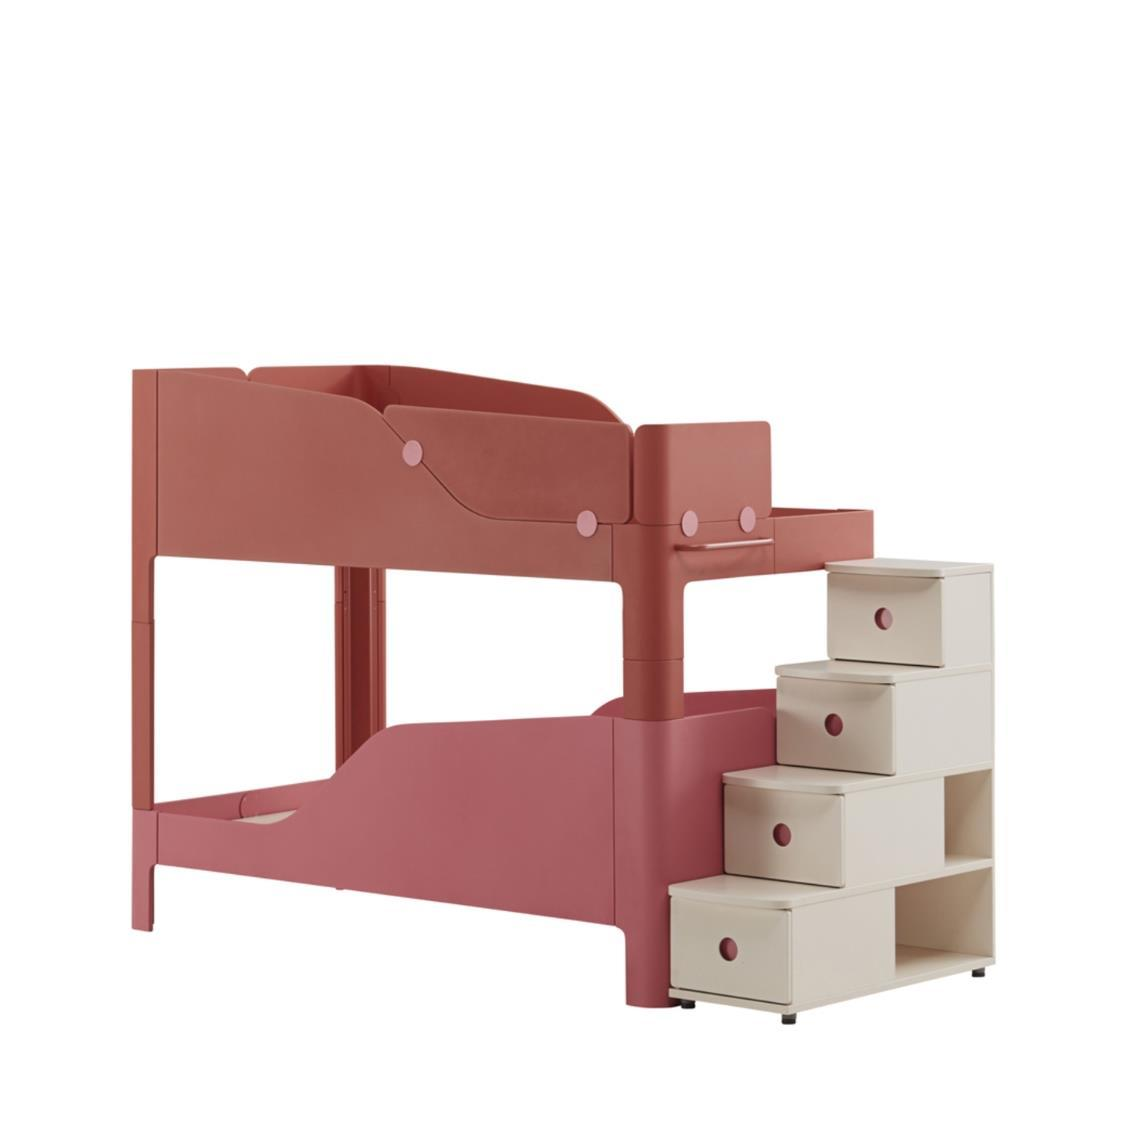 Tinkle Pop 2 Story Bed Stairs KRKP Red Pink